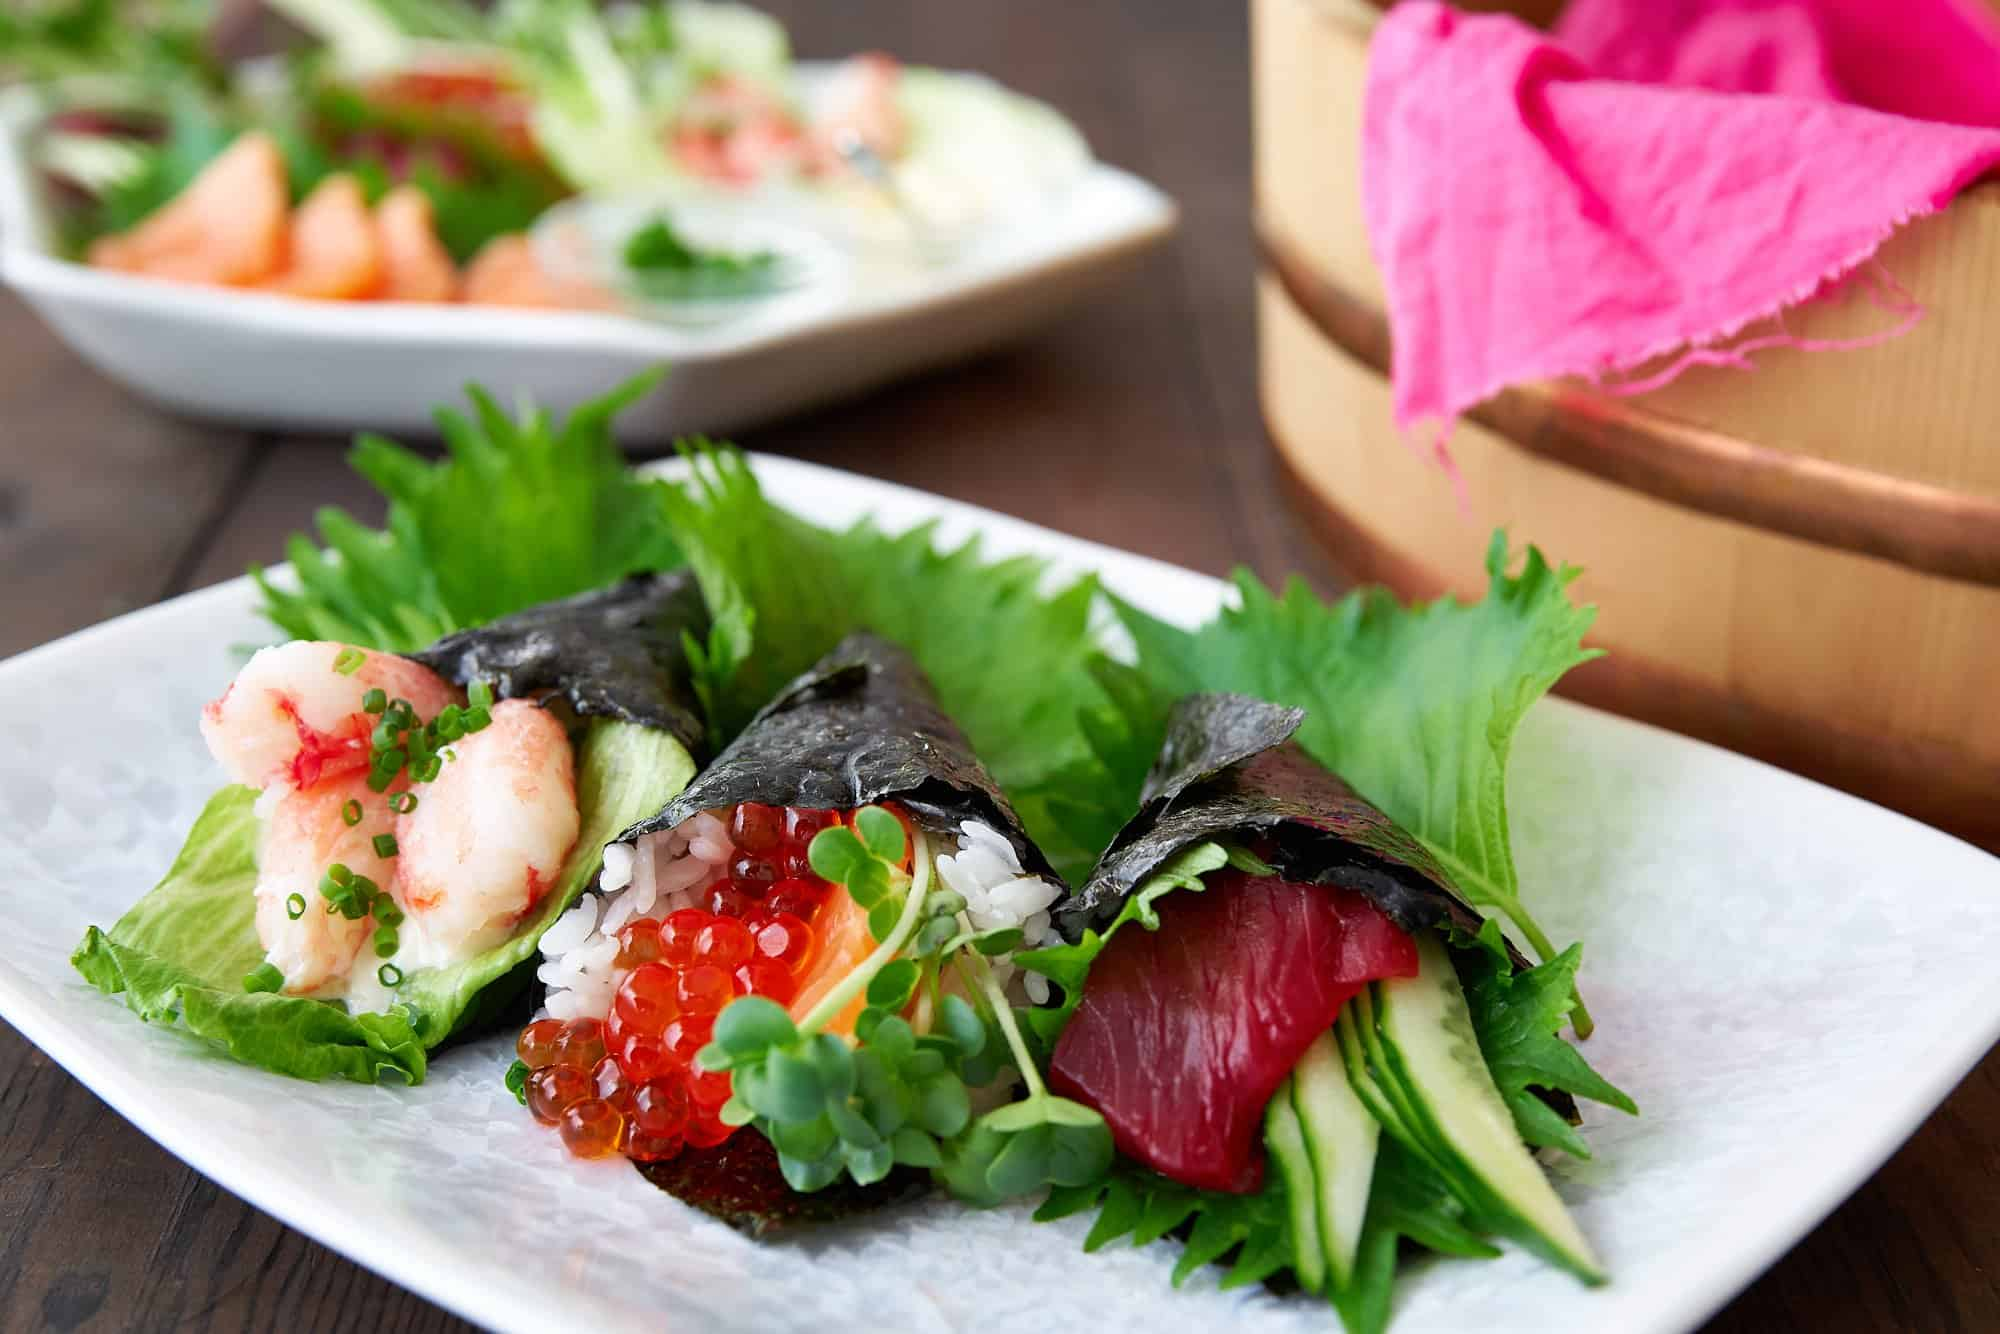 Temaki is a type of hand-rolled sushi that anyone can make at home with your favorite filling ingredients.